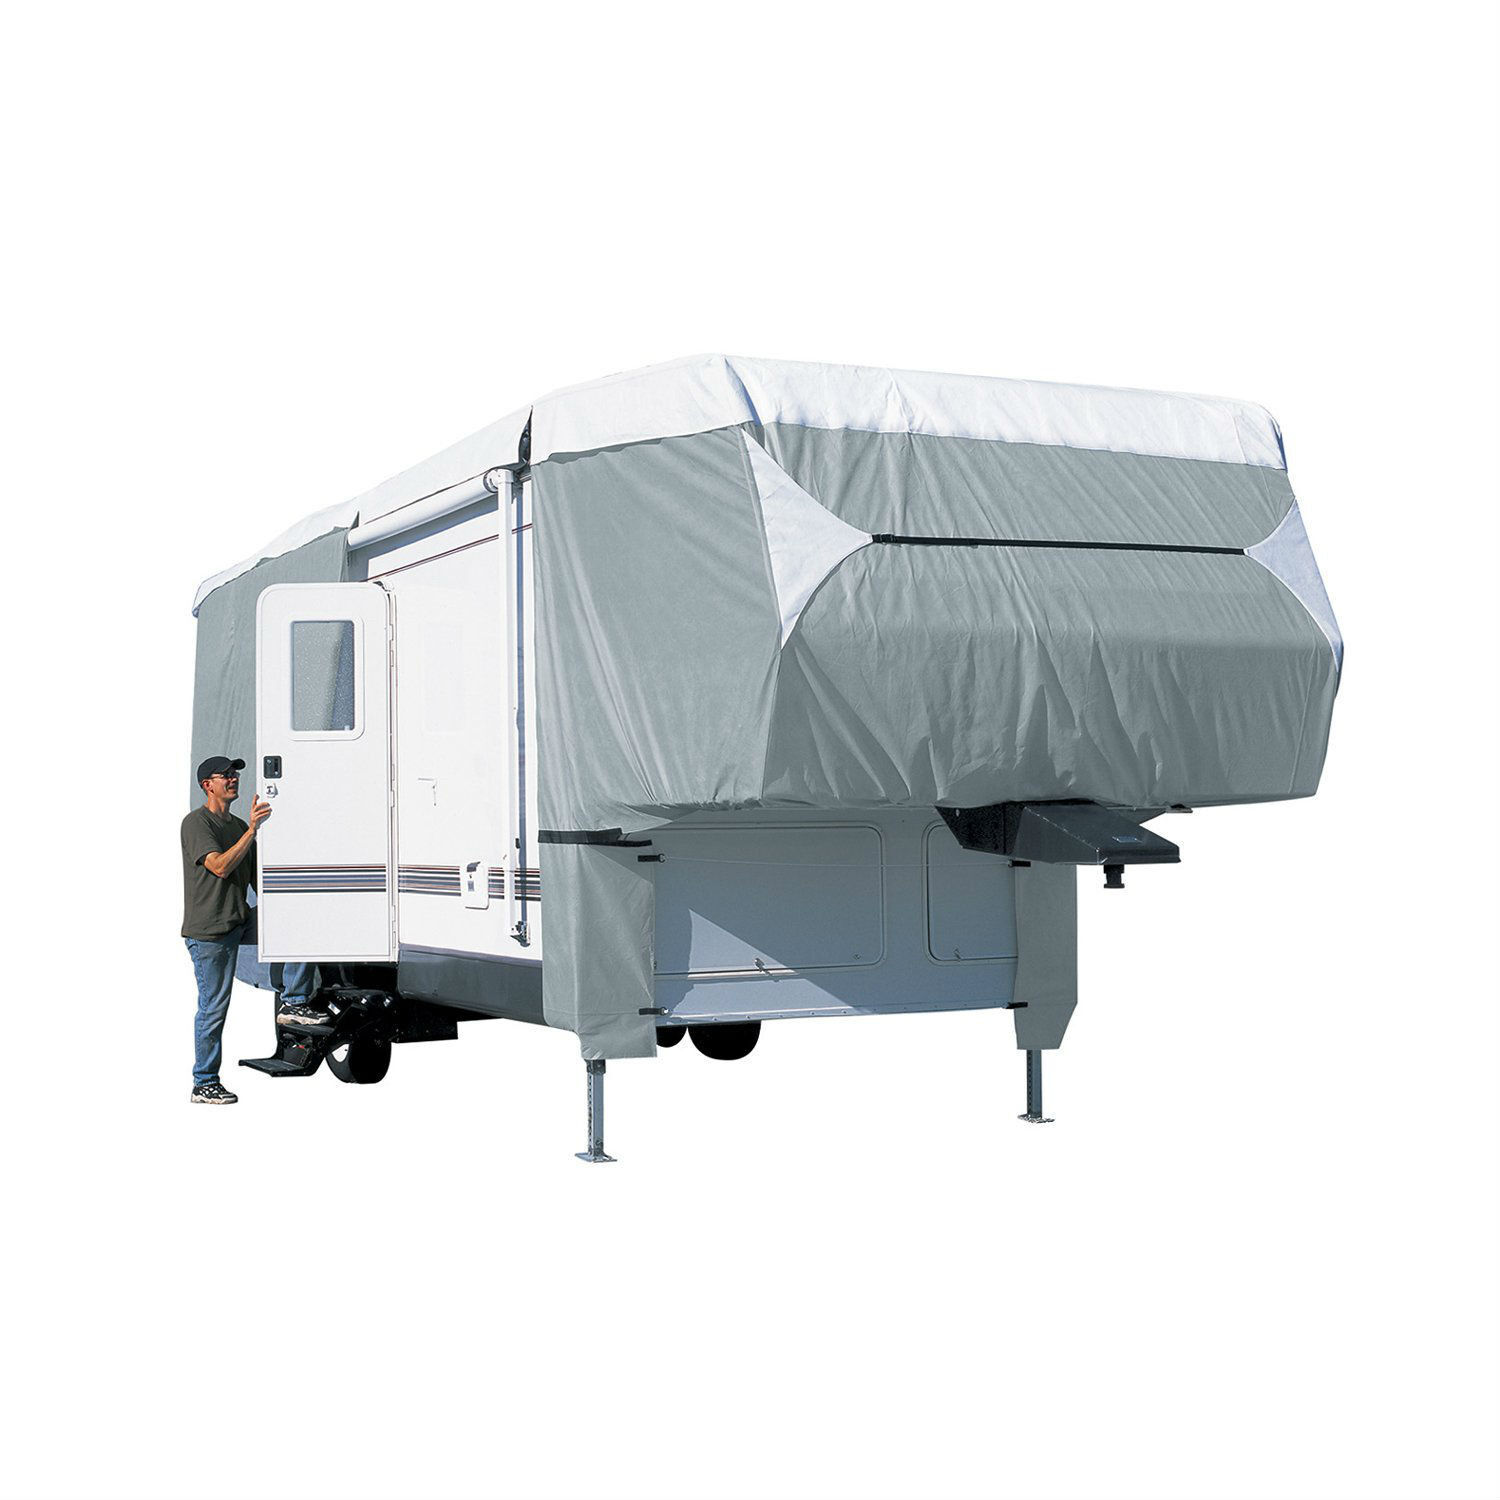 Classic  Accessories 75763 PolyPRO III Deluxe Fifth Wheel Cover 37-feet - 41-feet  no minimum